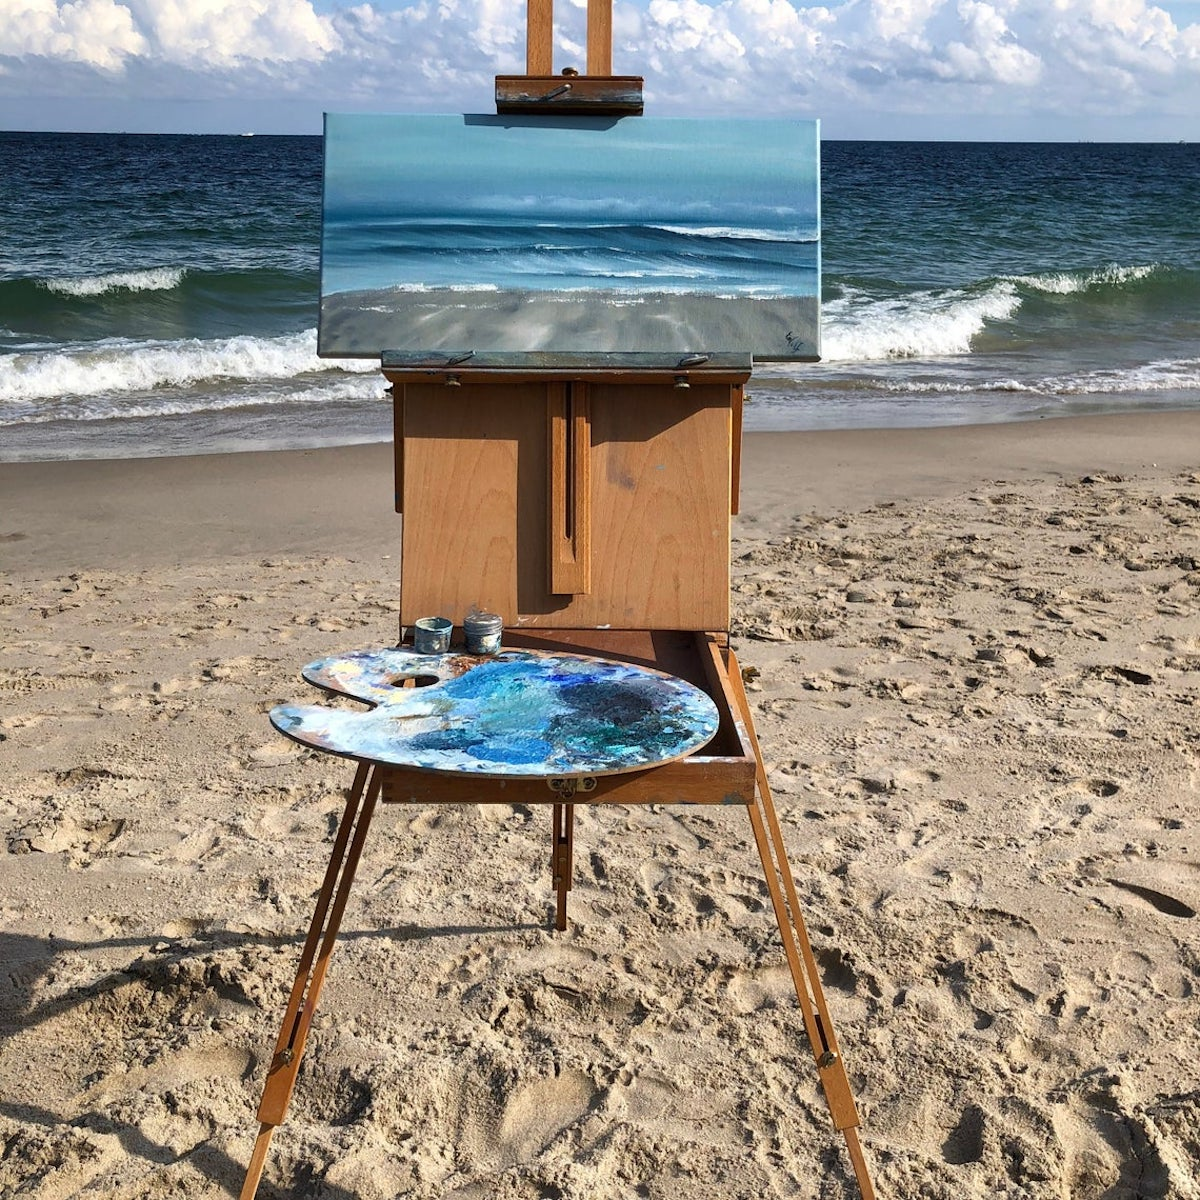 Painting of Water by Eva Volf